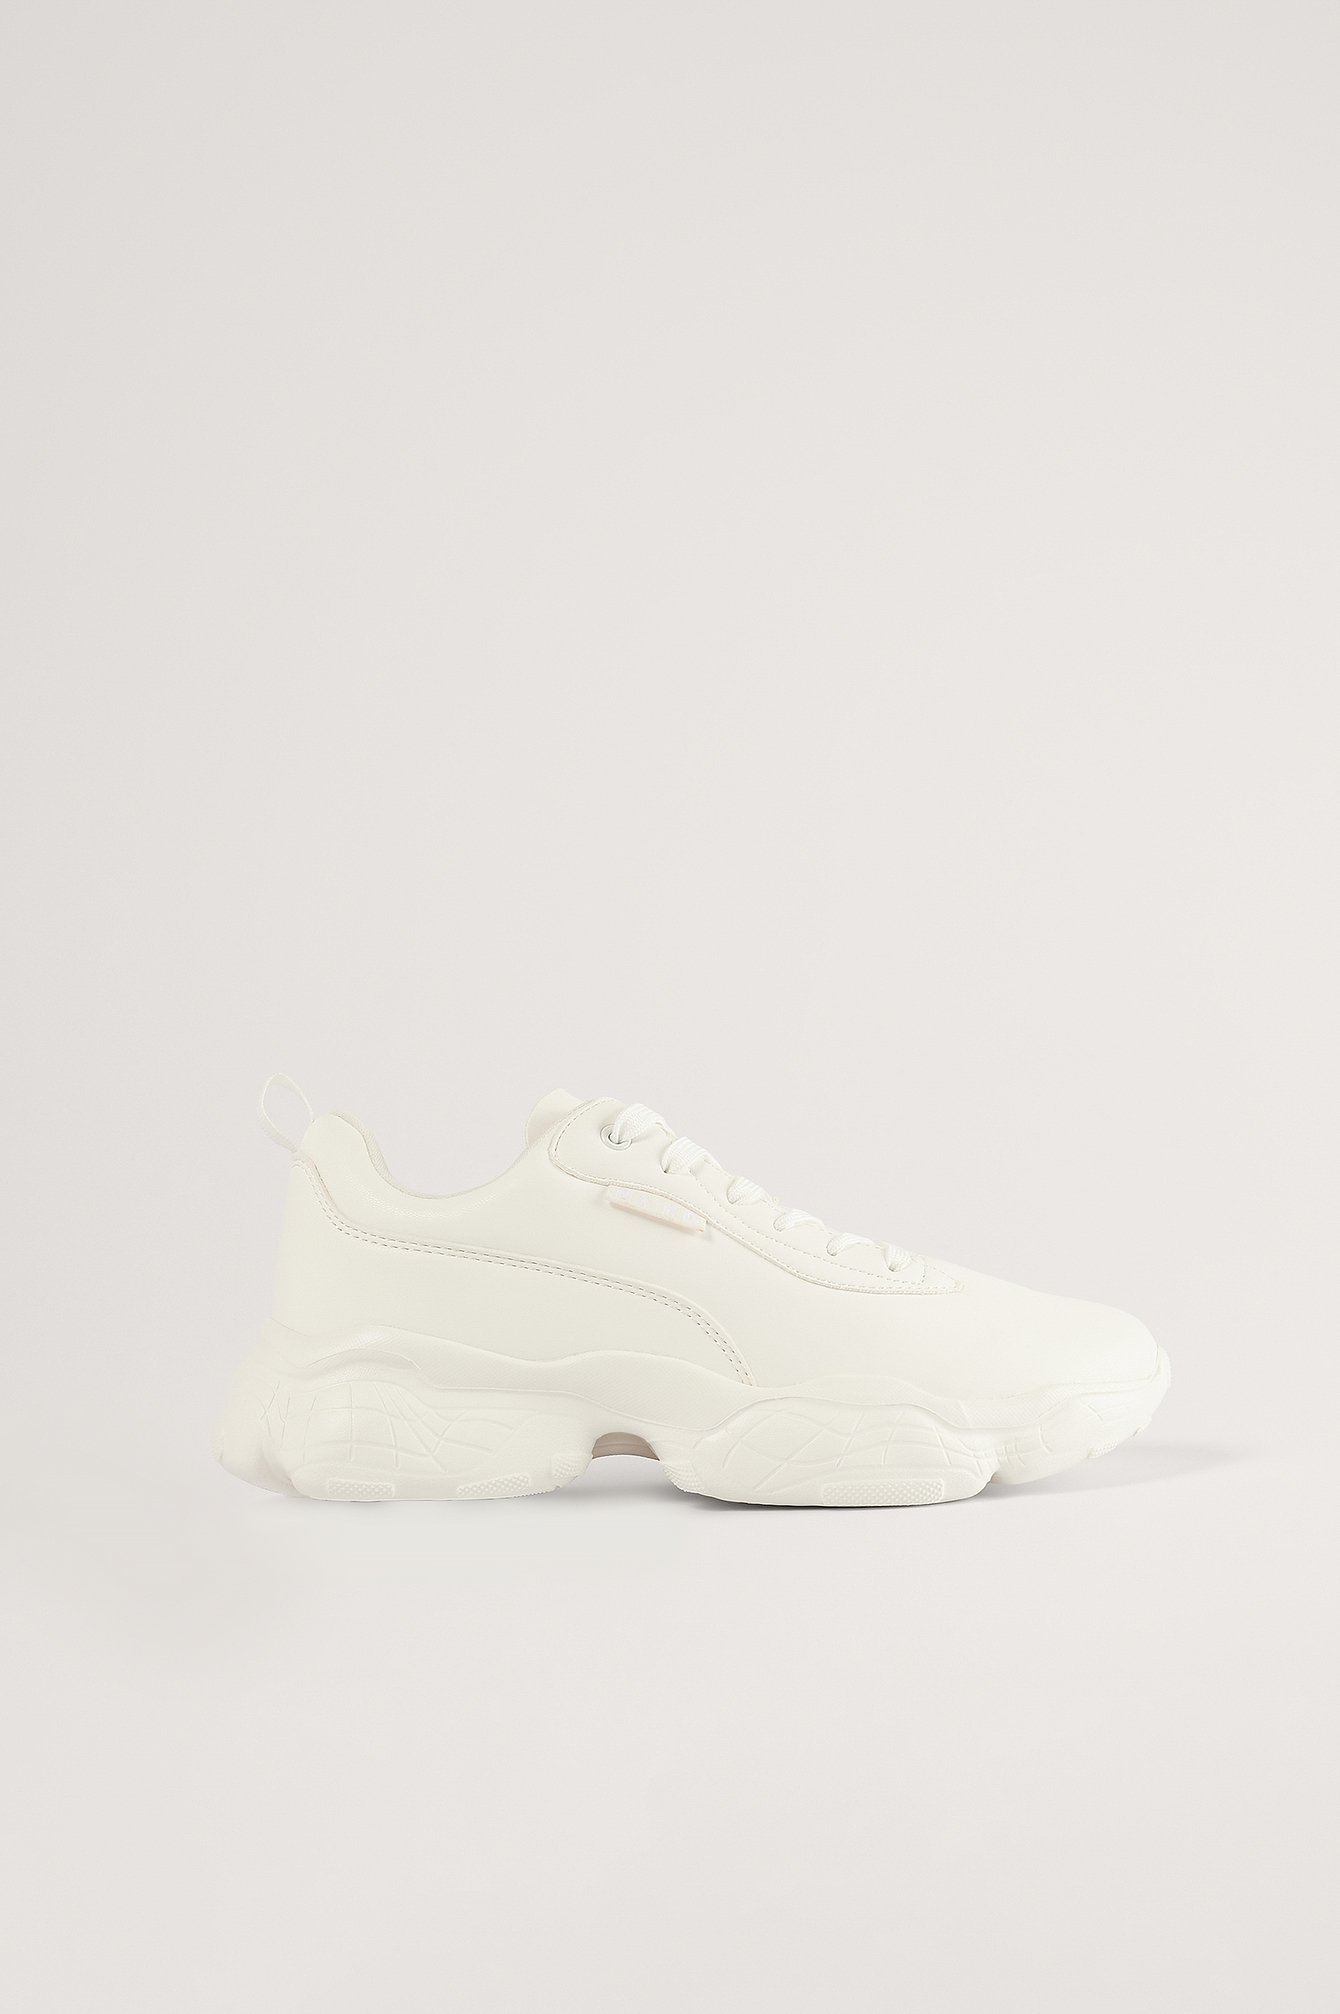 Offwhite Chunky Sneakers